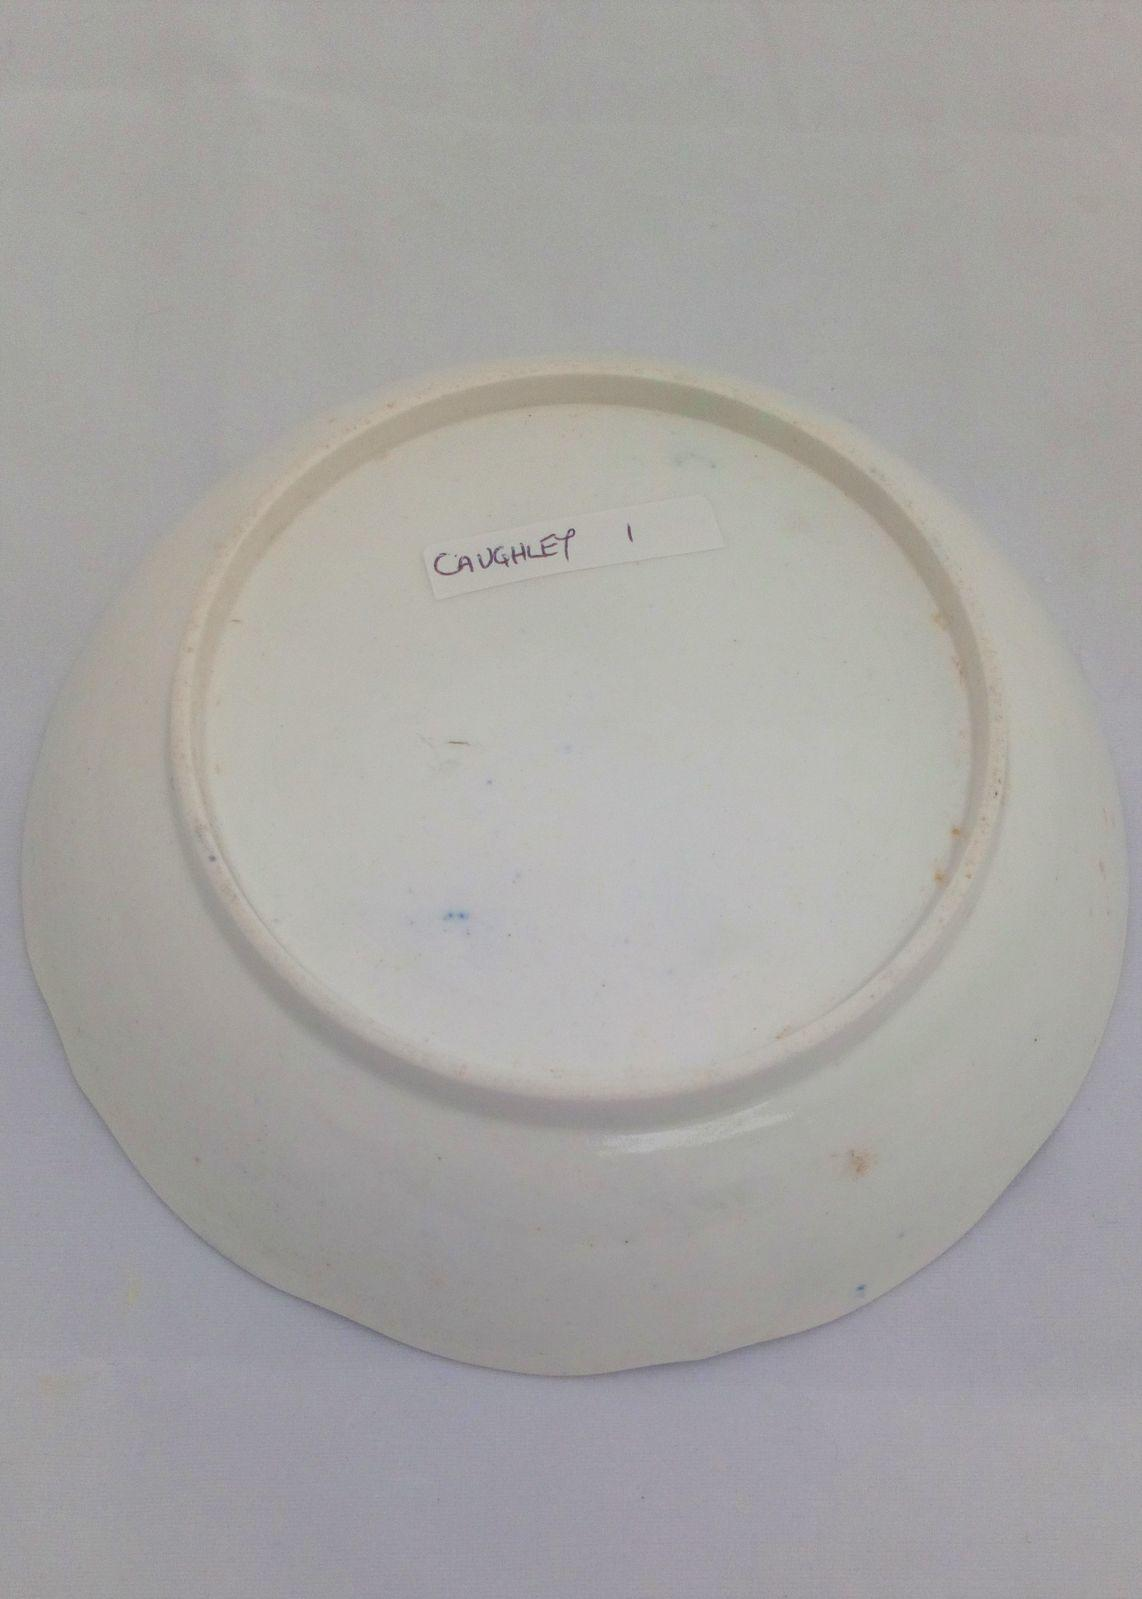 Caughley Porcelain Saucer Blue & White Printed Broseley Pattern Salopian c 1785